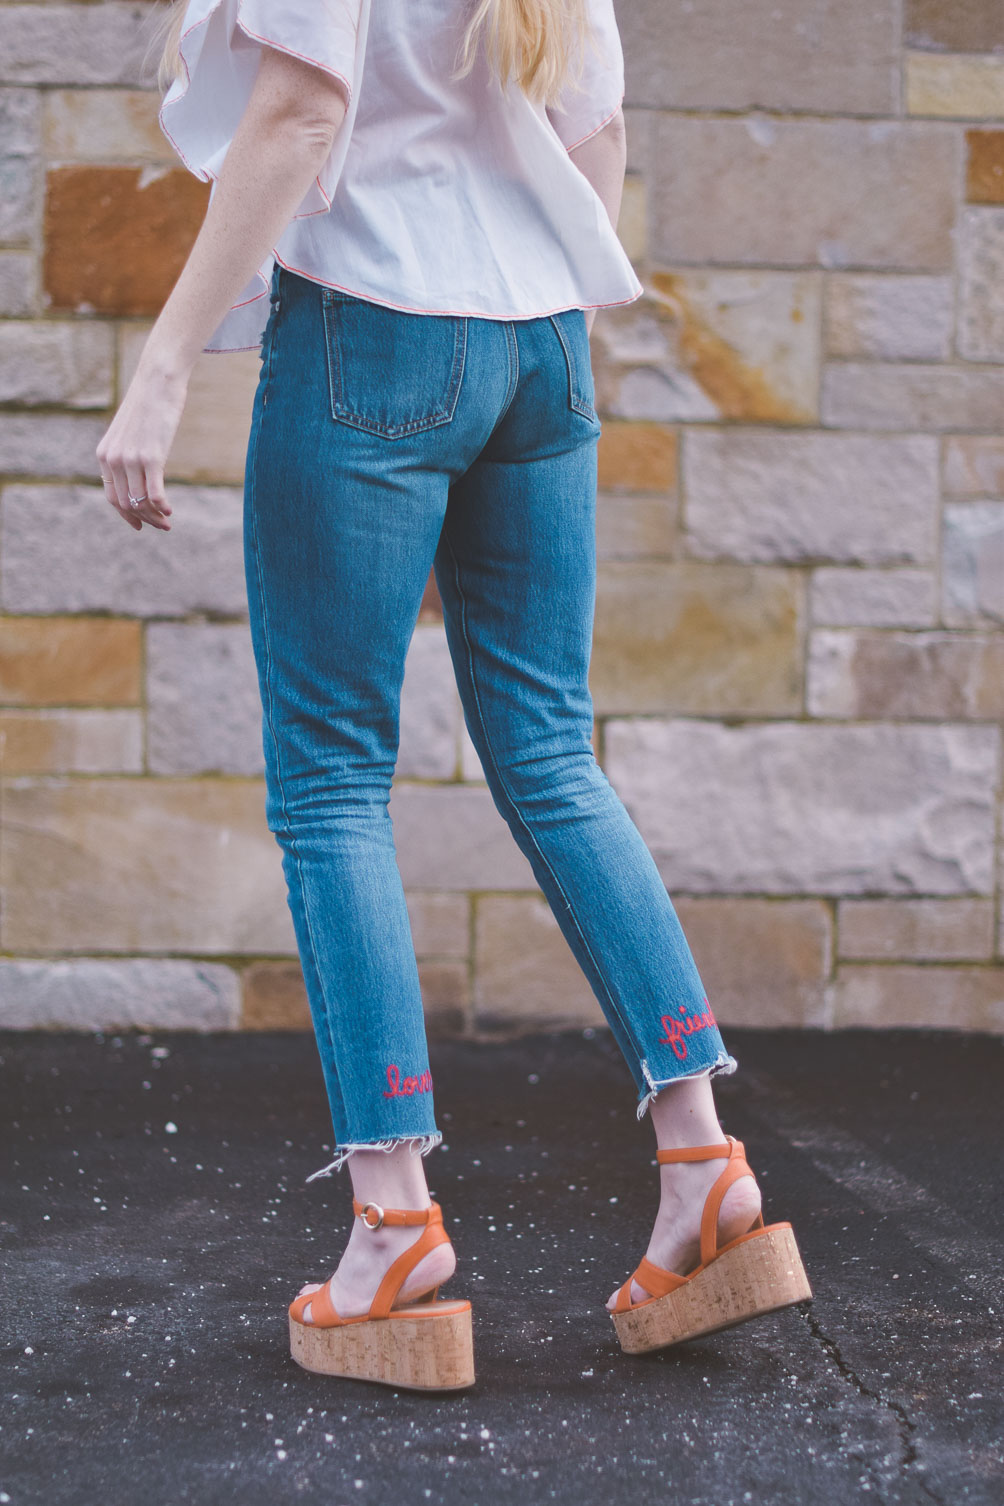 wearing an embroidered vintage top for spring with raw edge denim and cork platform sandals